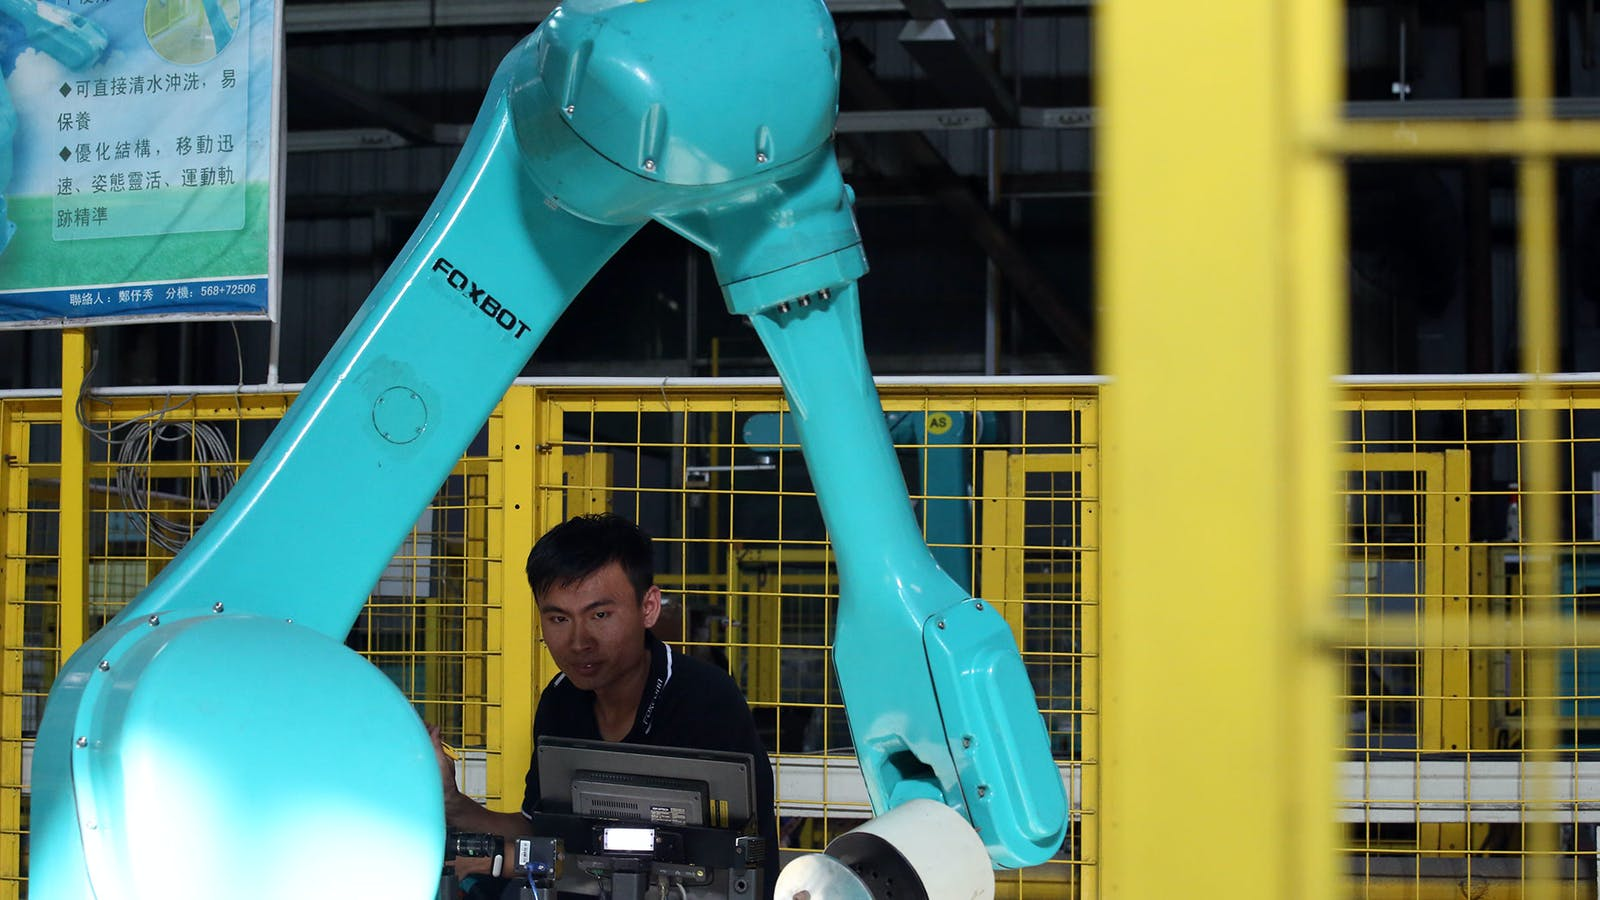 """Testing for Foxconn's industrial robots """"Foxbot"""" are performed at Foxconn factory in Longhua town, Shenzhen in 2016. Photo by Getty Images."""